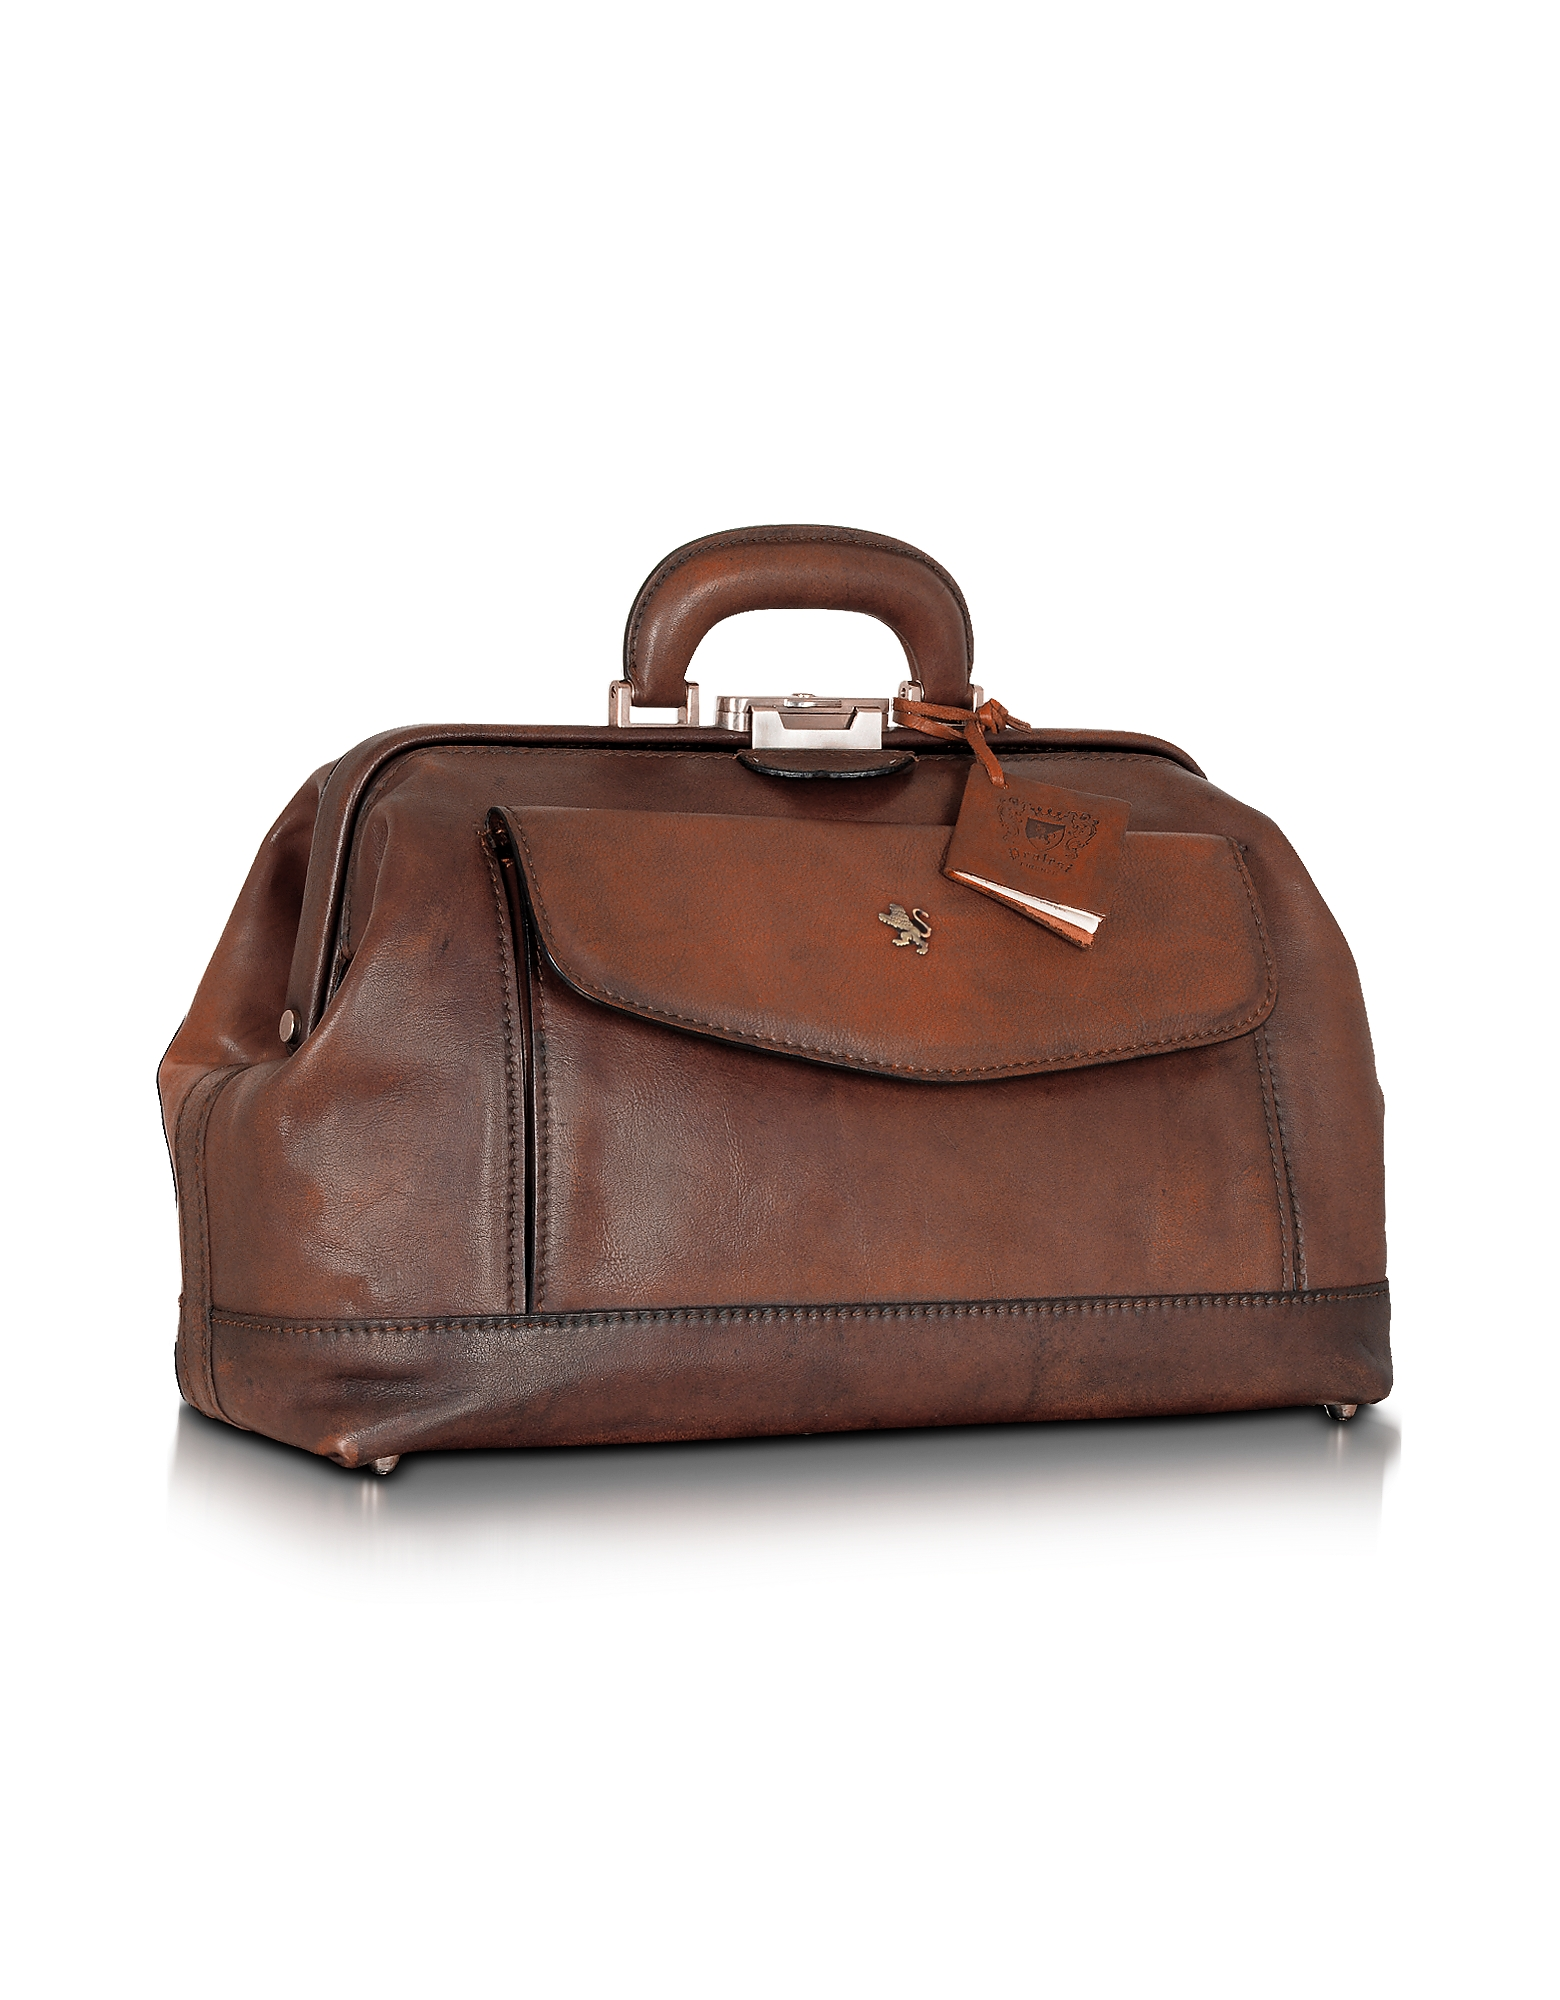 Pratesi Briefcases, Genuine Leather Doctor Bag